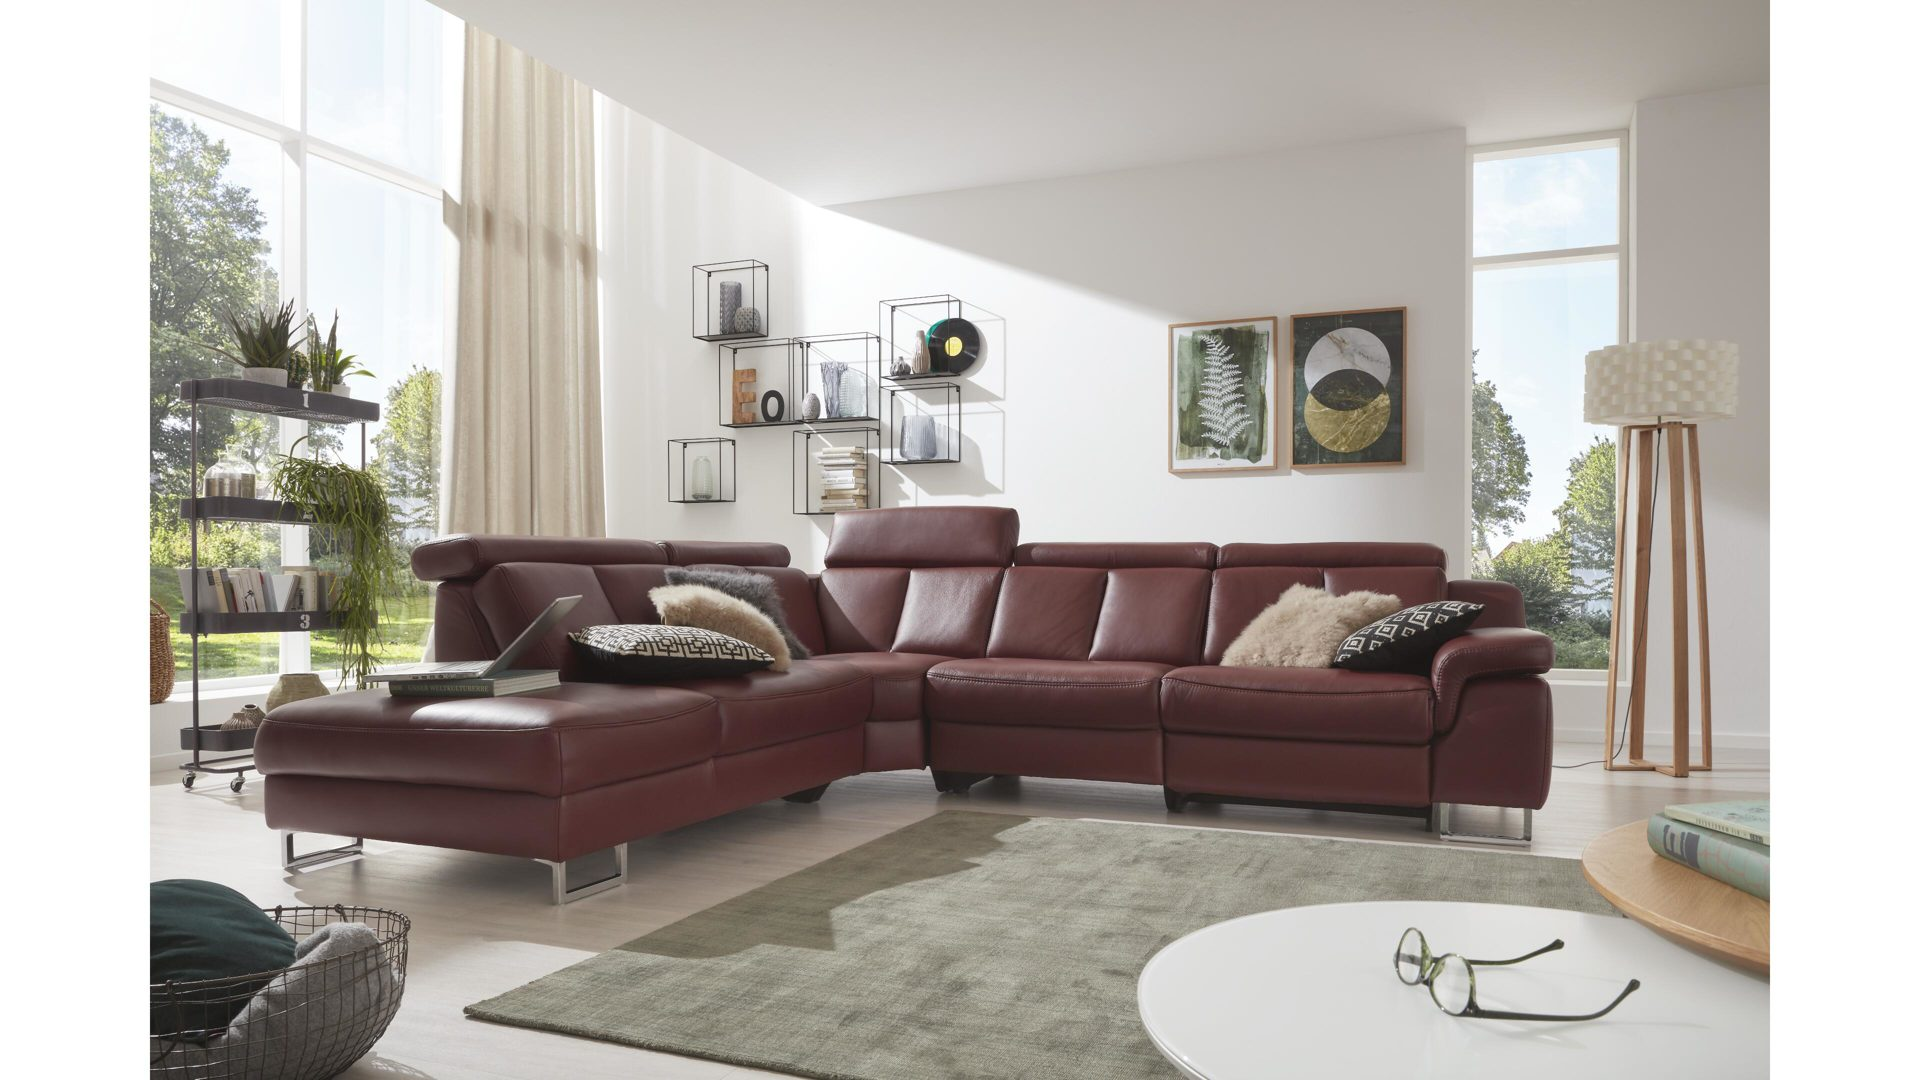 Sofa Füße Chrom Interliving Sofa Serie 4050 Eckkombination Barolofarbenes